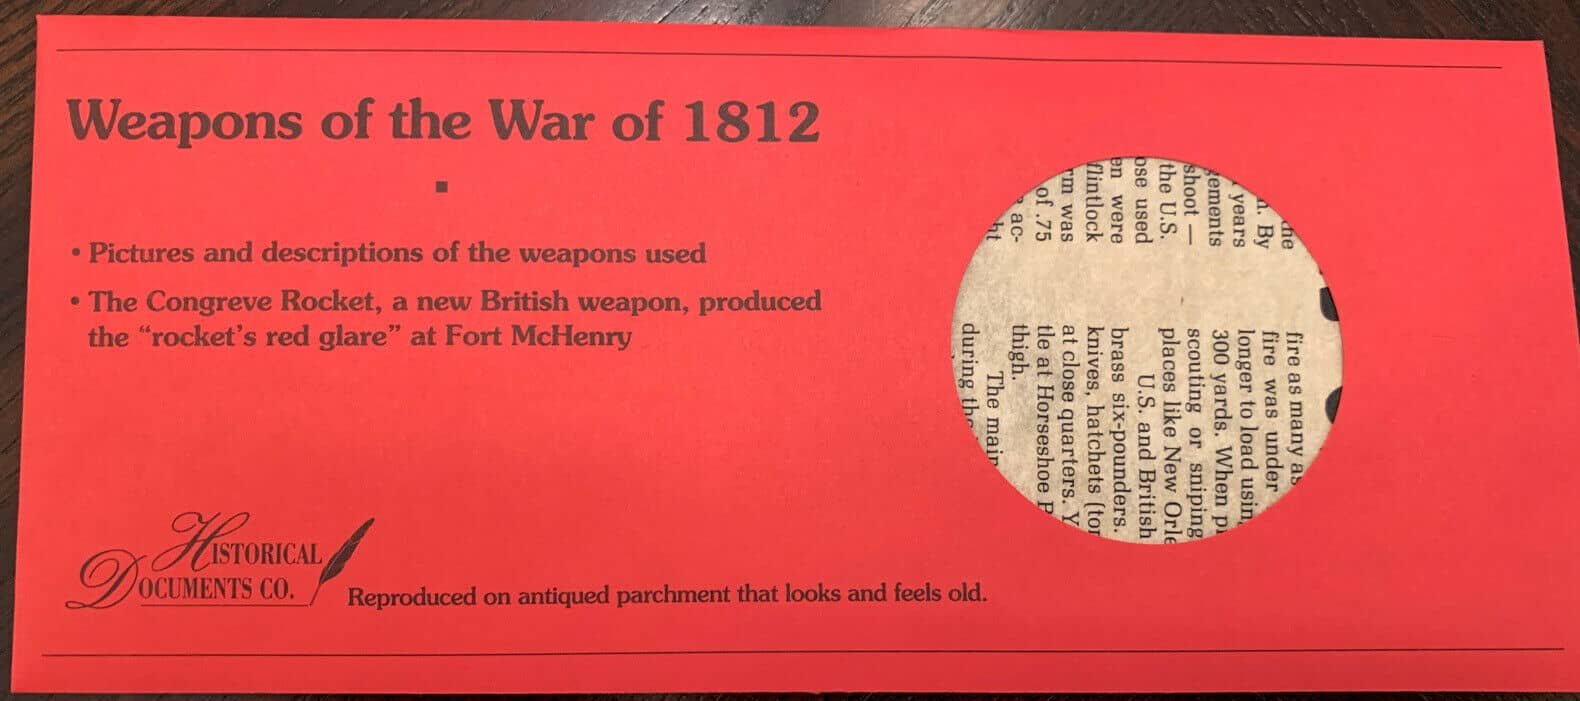 Weapons Of The War of 1812